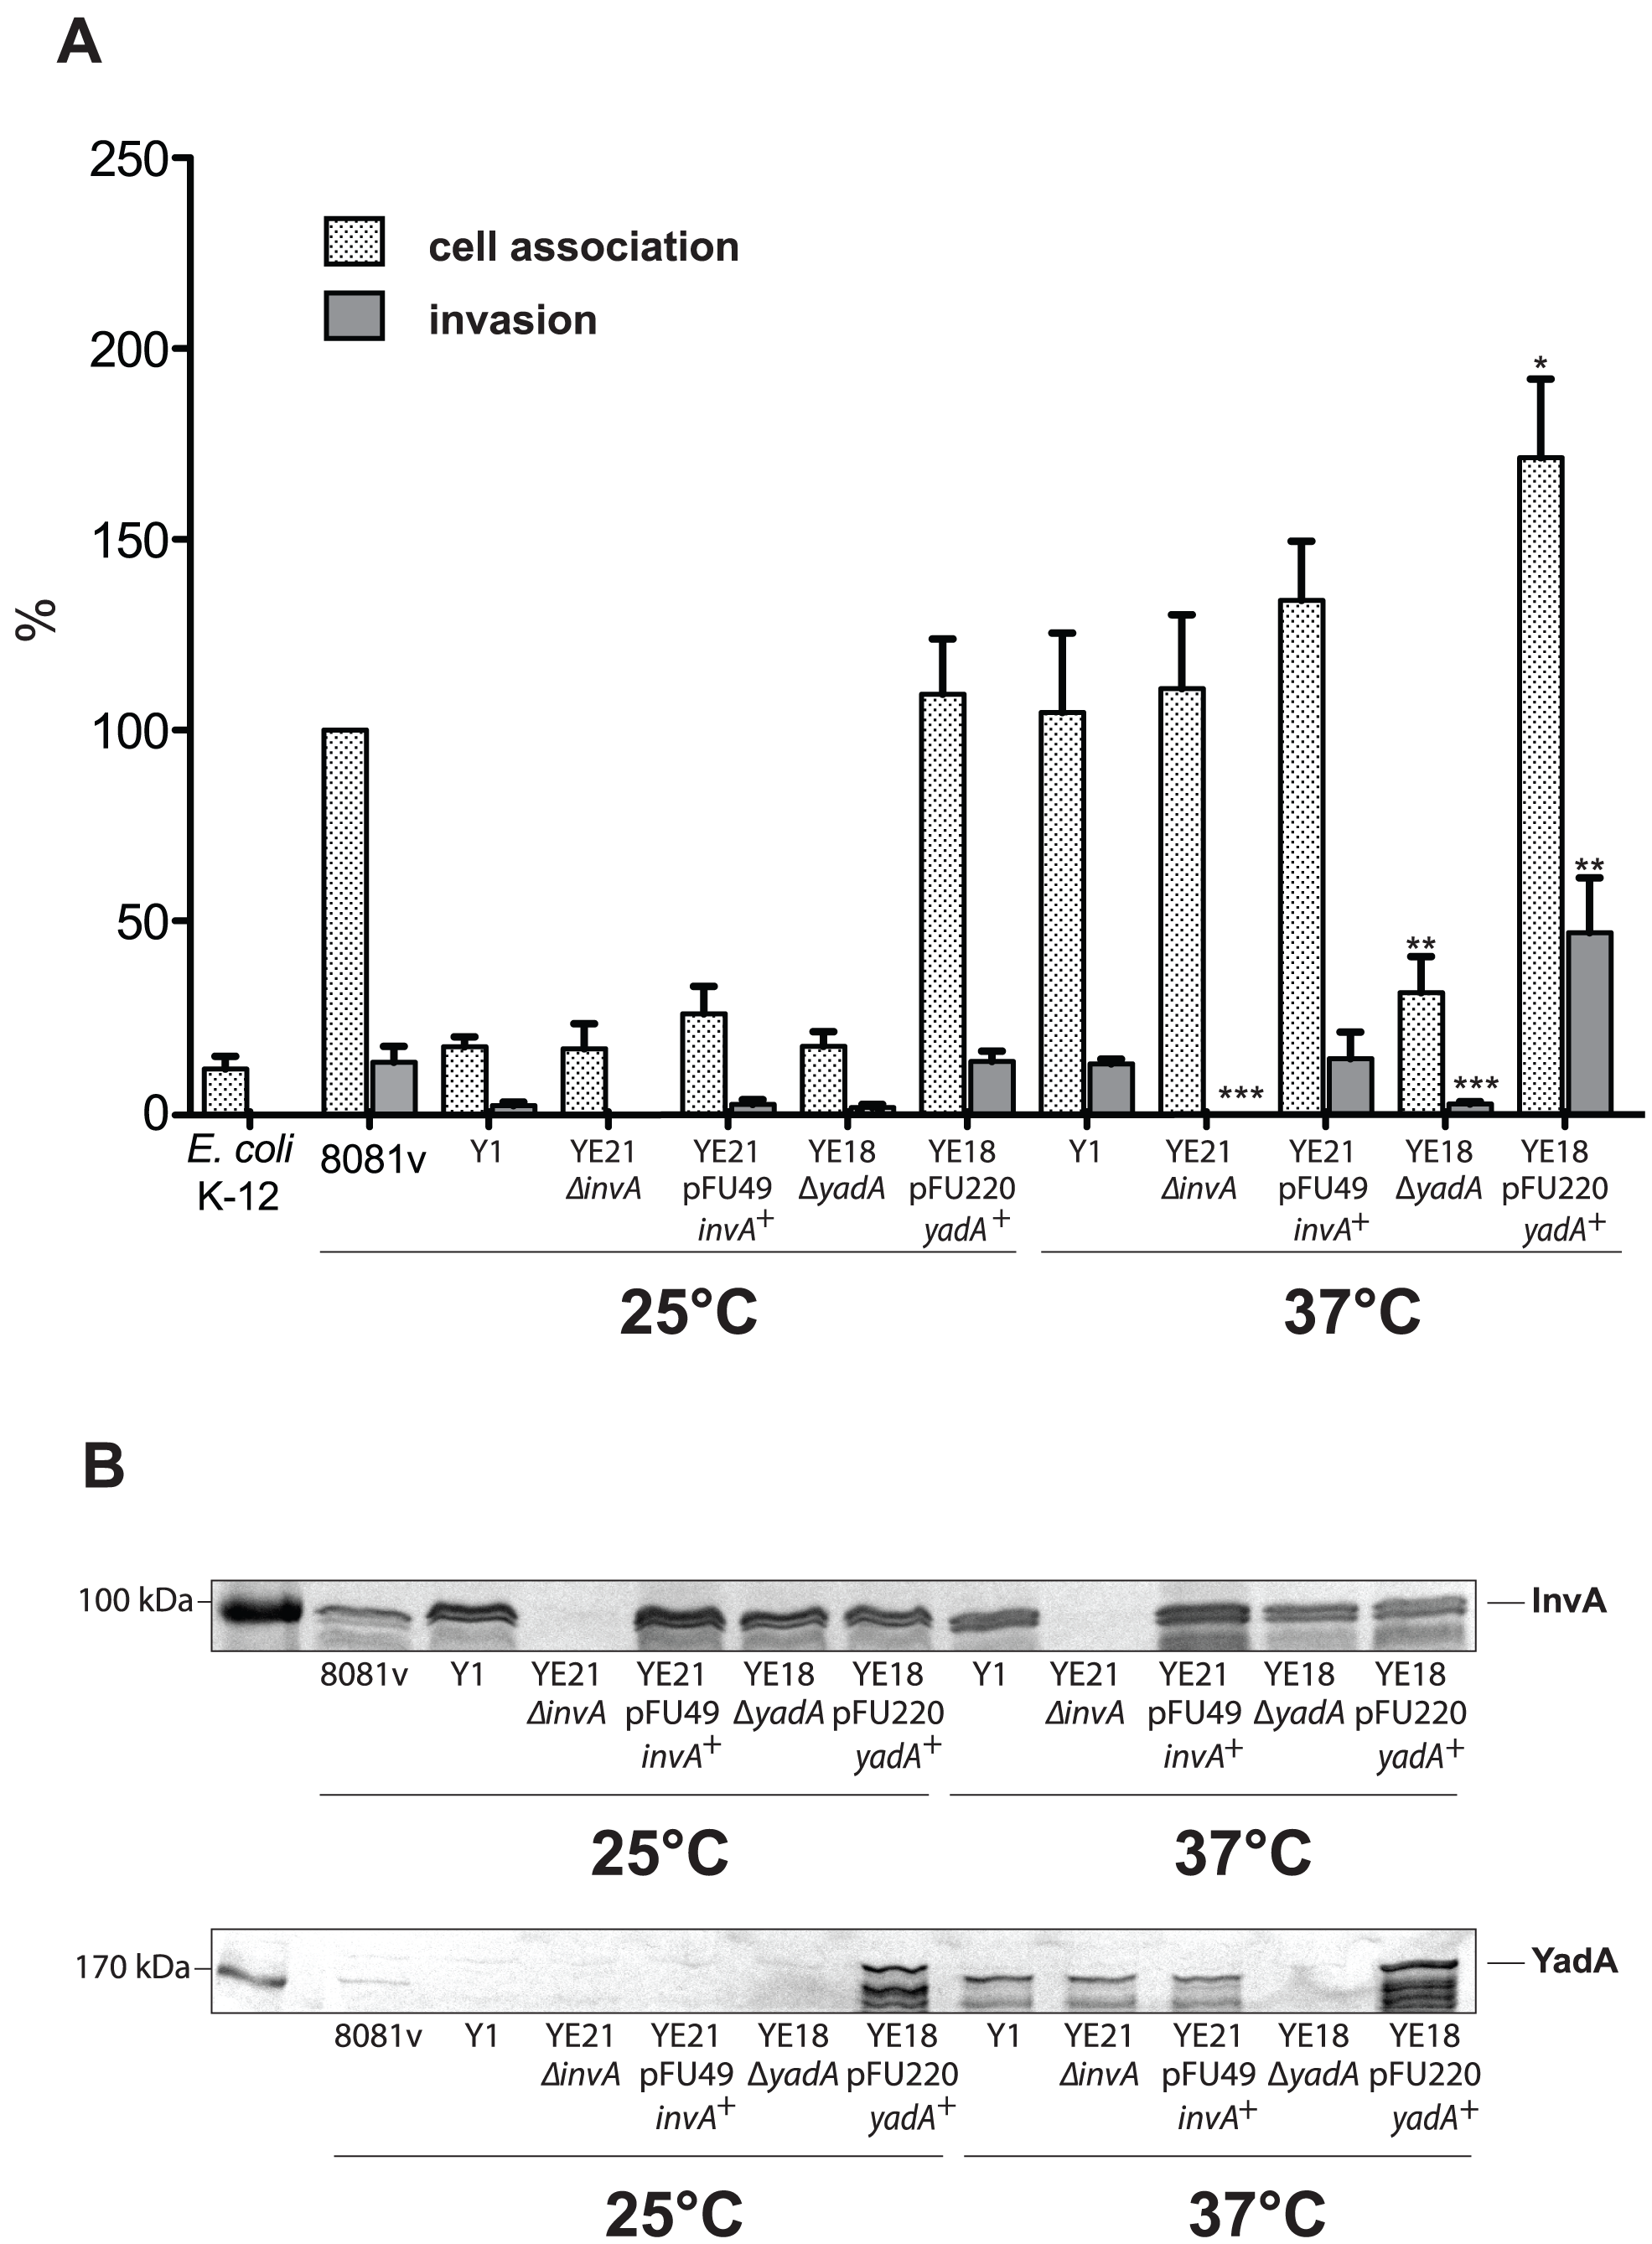 Coexpression of invasin and YadA is necessary for efficient invasion at 37°C.